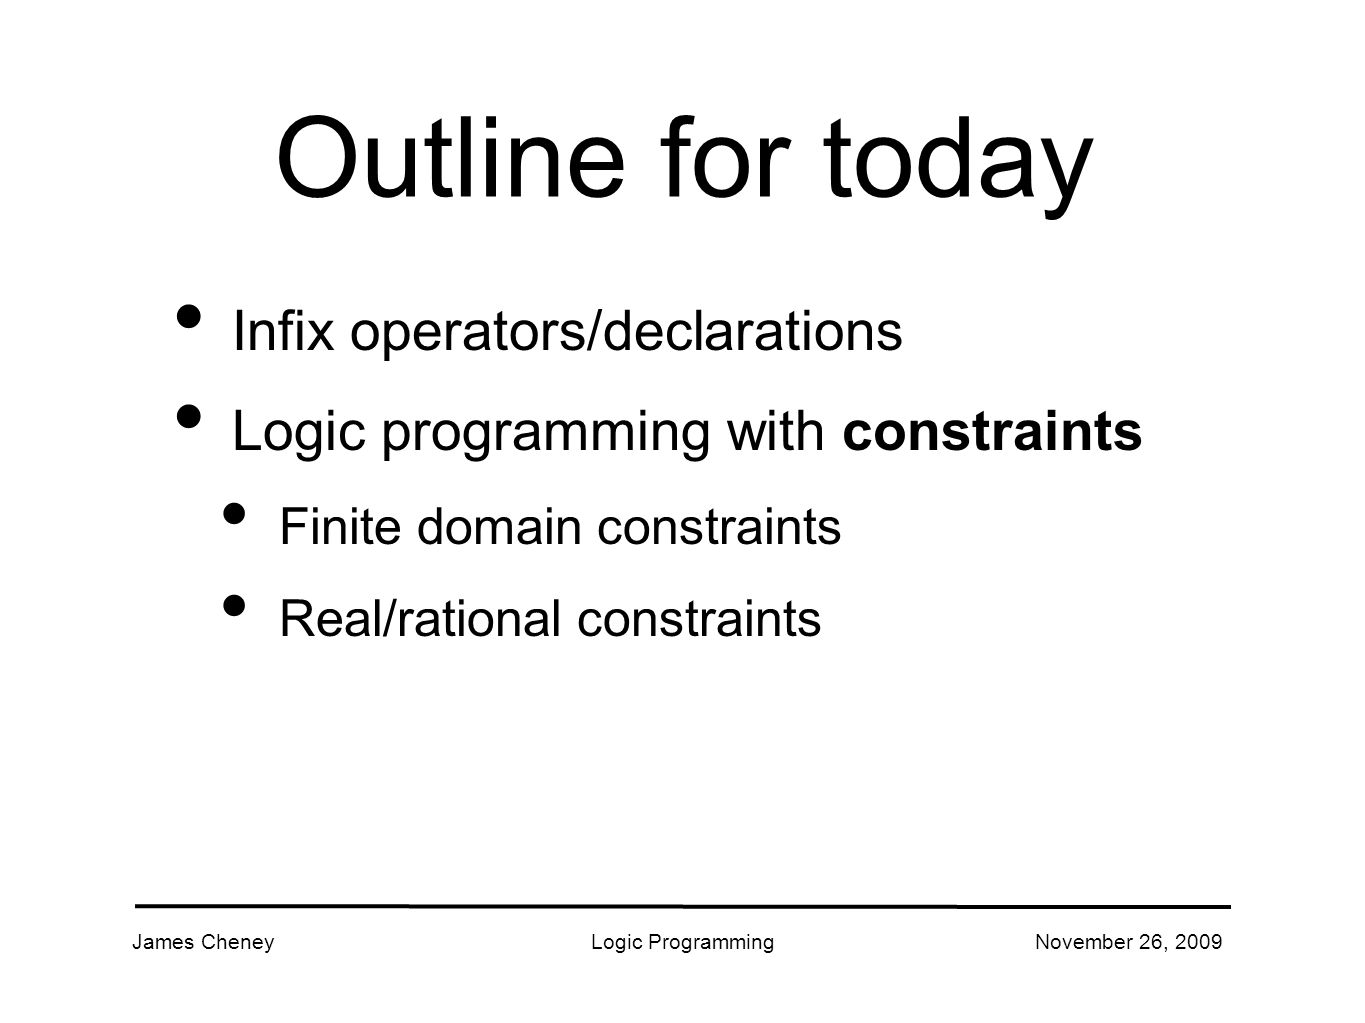 James CheneyLogic ProgrammingNovember 26, 2009 Outline for today Infix operators/declarations Logic programming with constraints Finite domain constraints Real/rational constraints